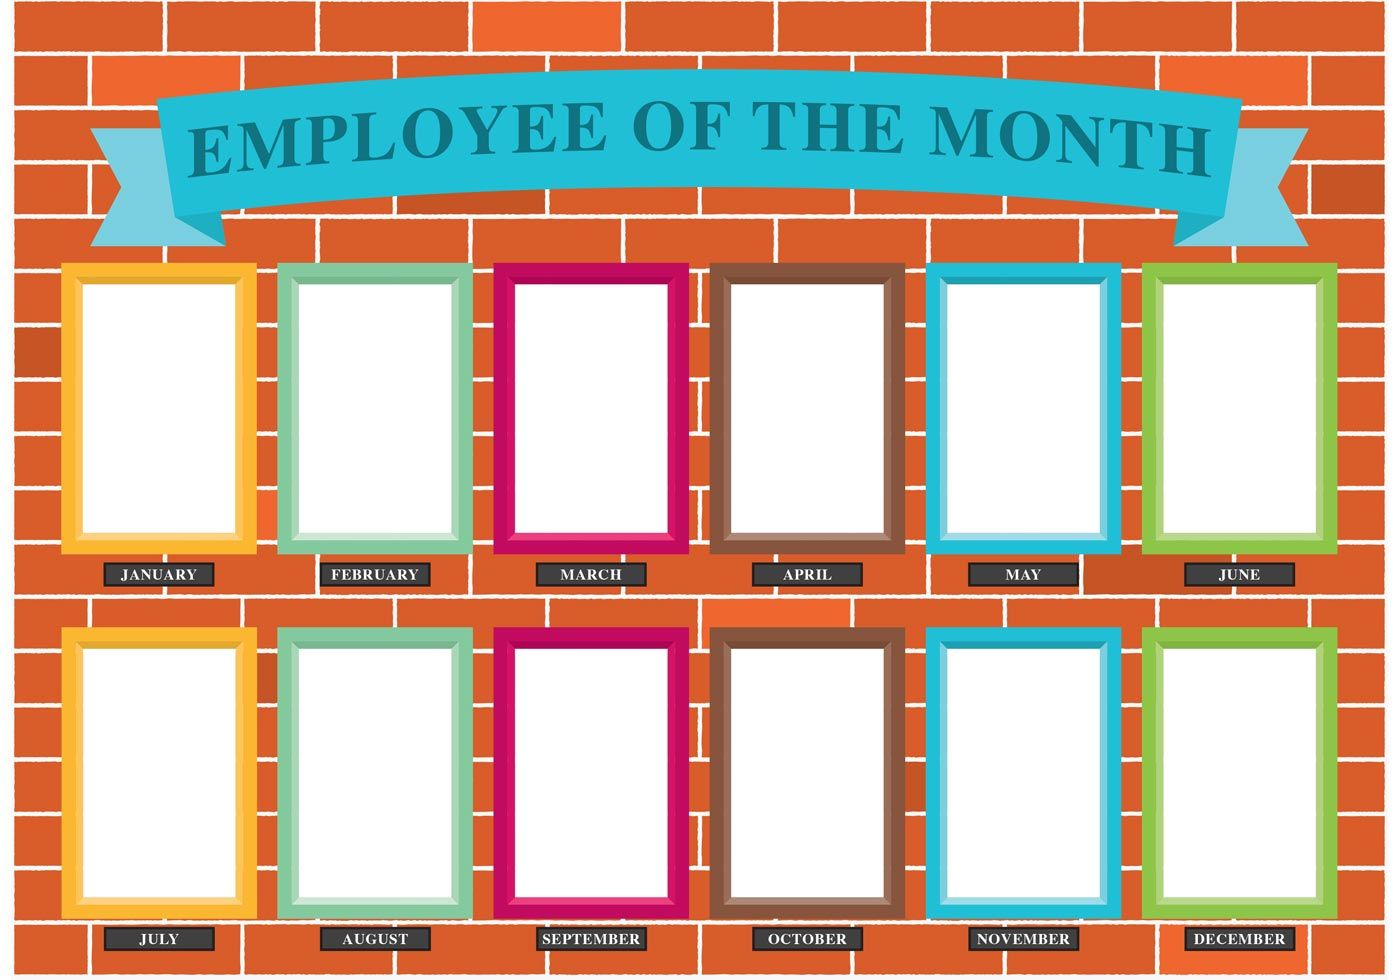 Employee Of The Month Wall Vector Choose From Thousands Of Free Vectors Clip Art Employee Recognition Employee Recognition Board Employee Appreciation Board Employee of the month templates free